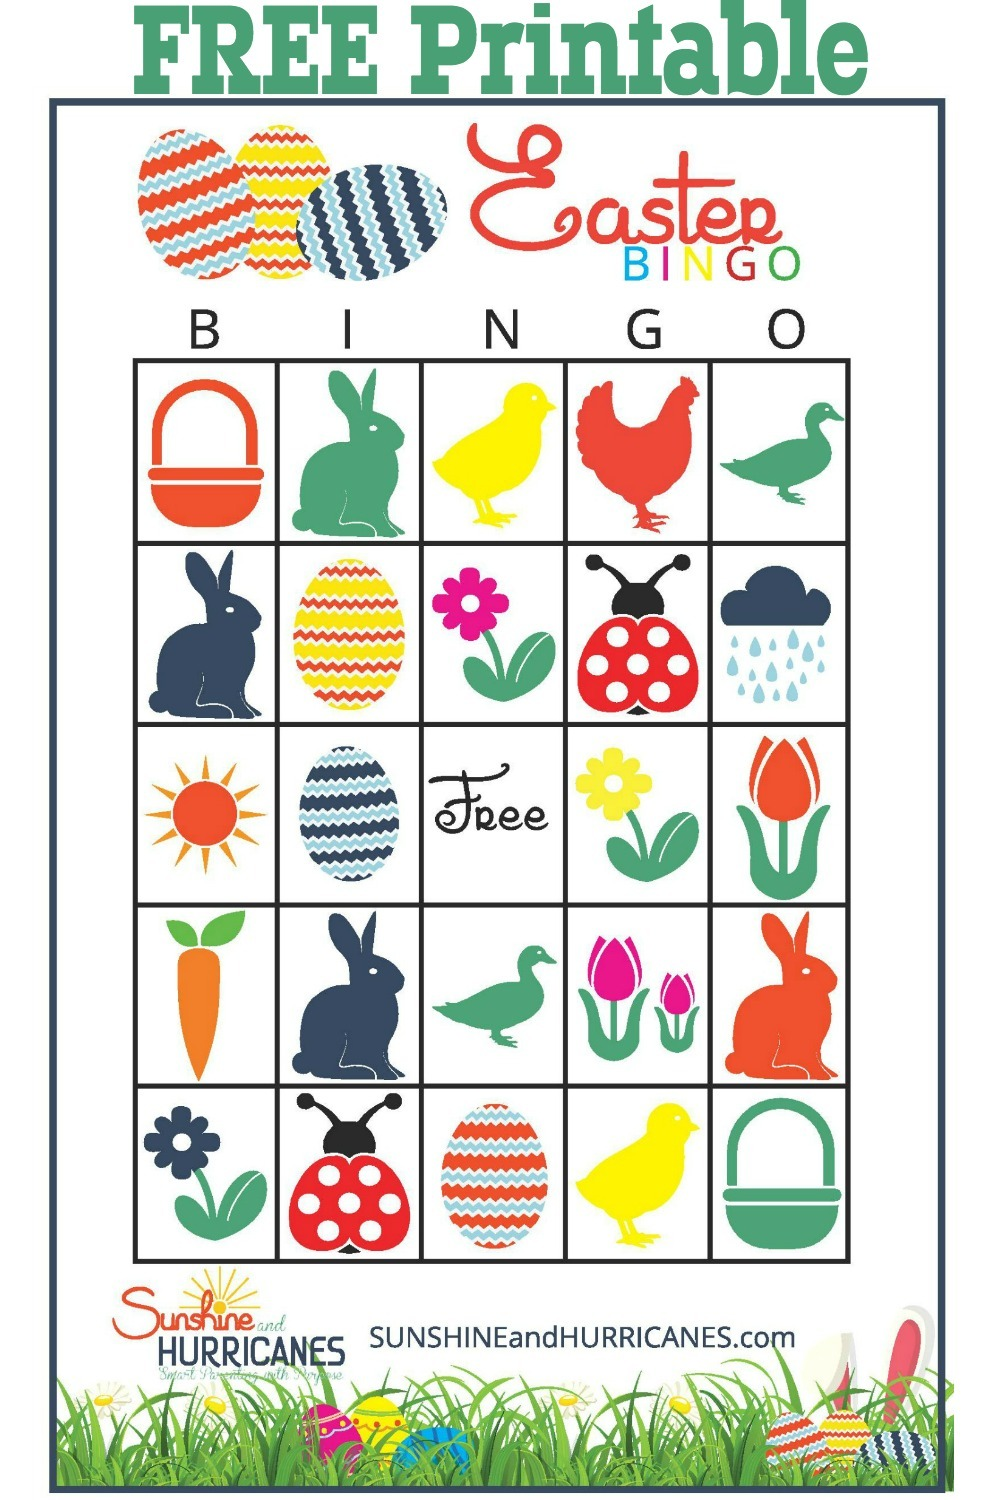 Magic image for free printable easter bingo cards